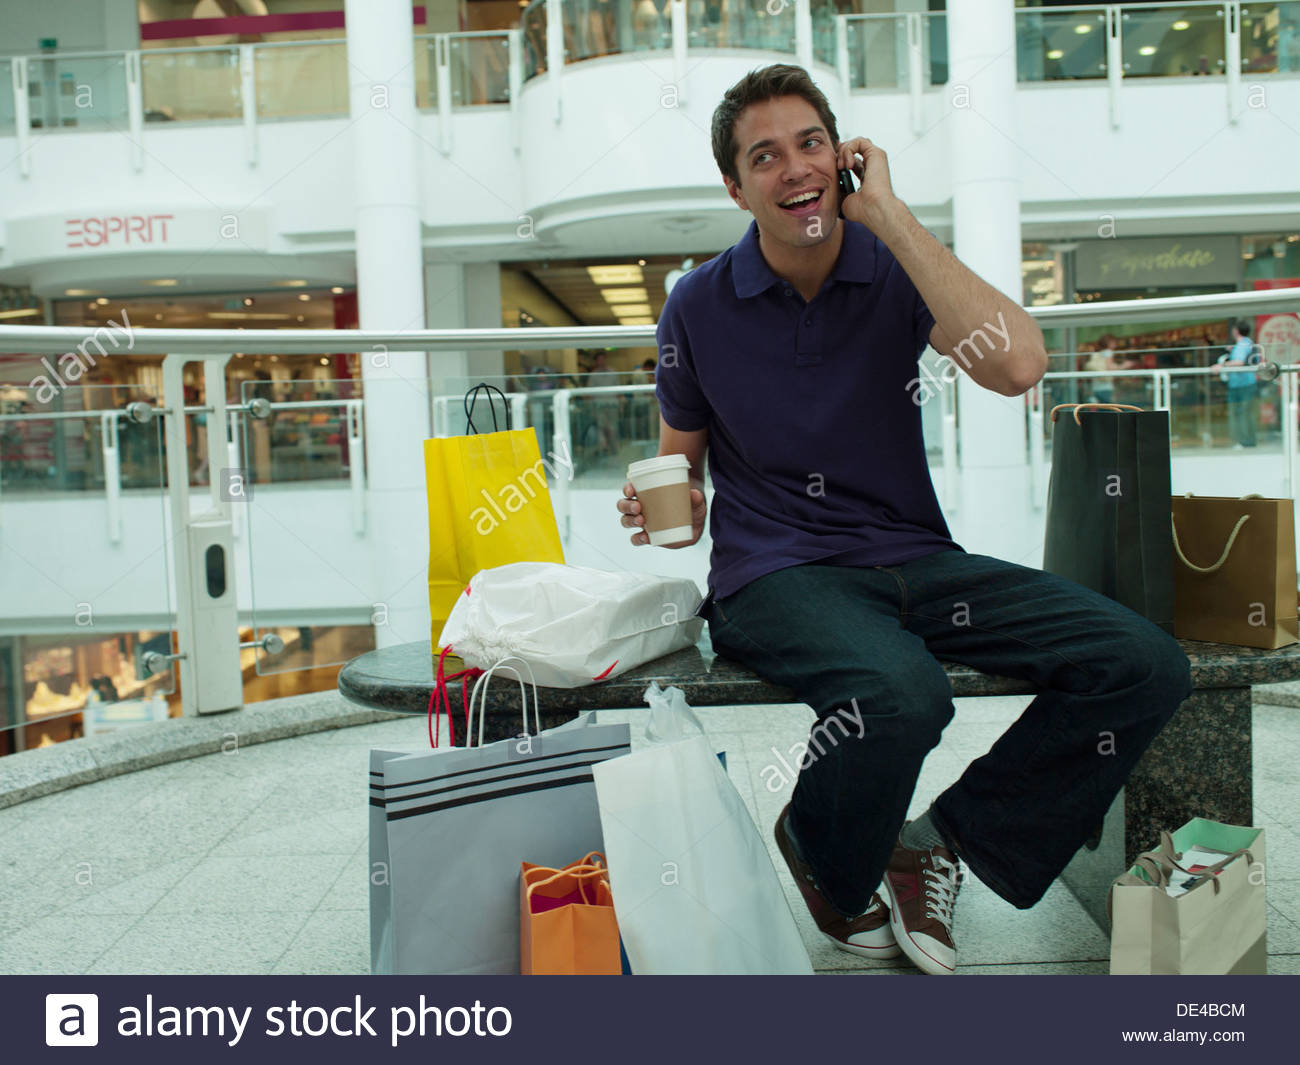 Smiling man in shopping mall talking on cell phone - Stock Image